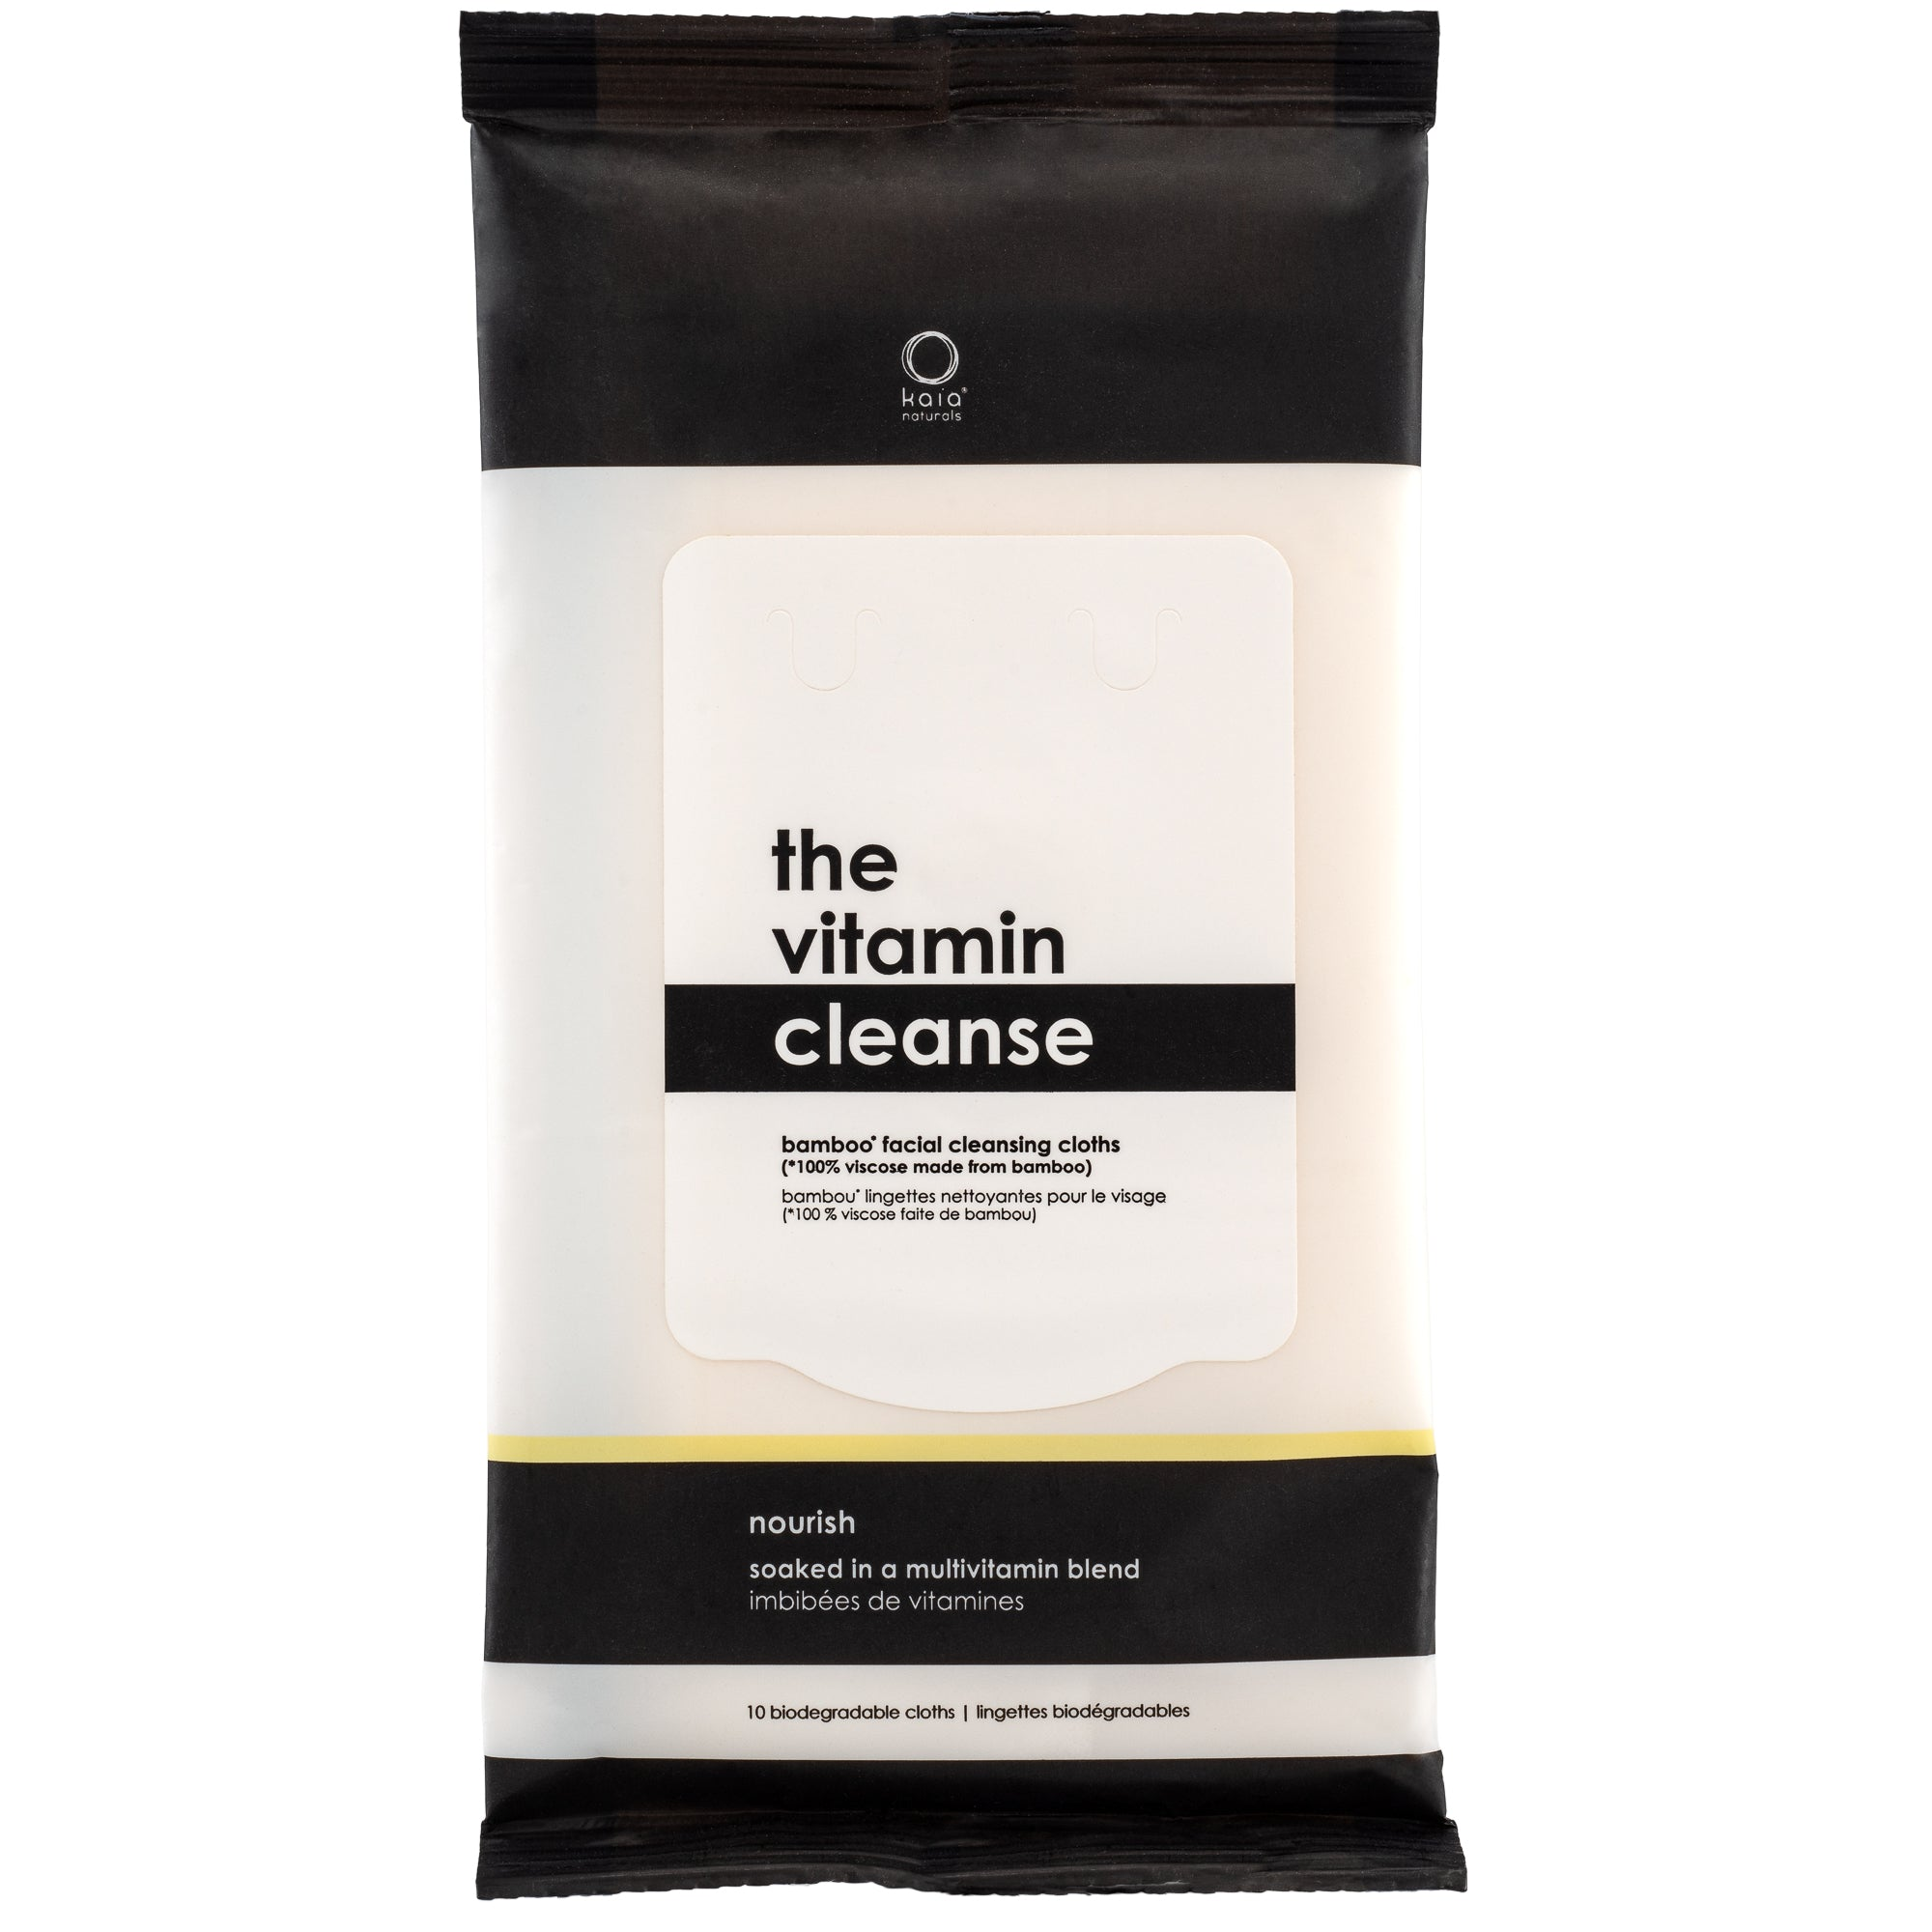 Kaia Naturals The Vitamin Cleanse Bamboo Cleansing Cloths